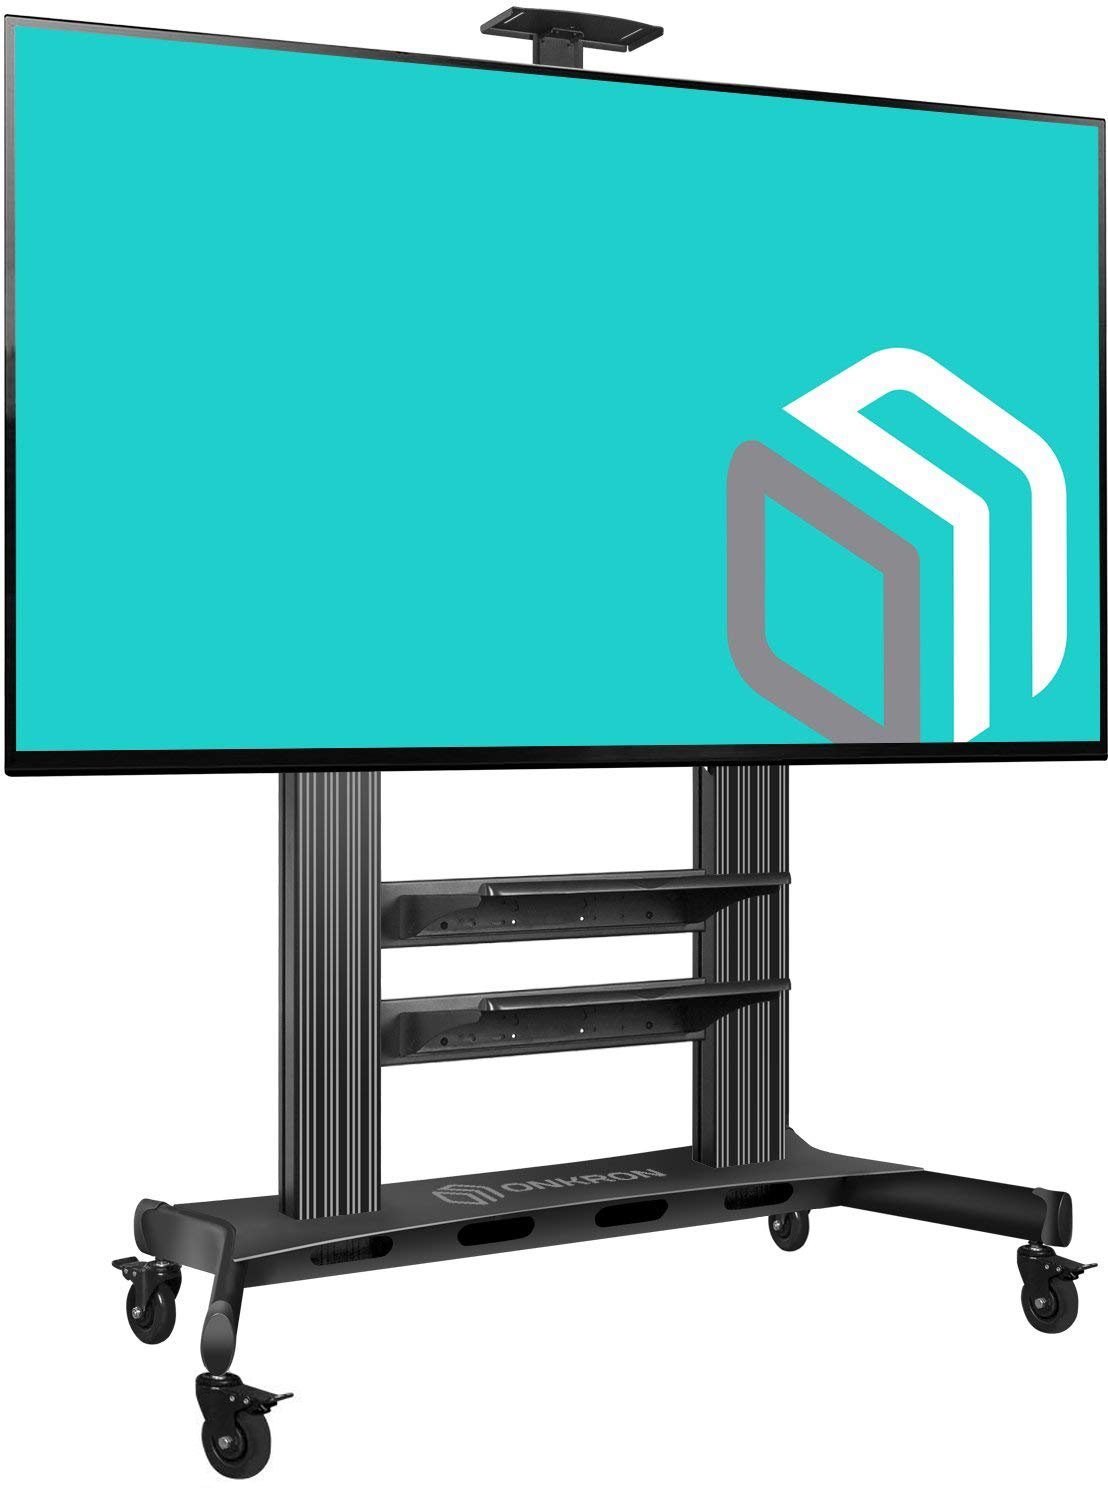 ONKRON Mobile TV Stand TV Cart for 60 to 100-Inch Flat Screens up to 300 lbs Black (TS2811)